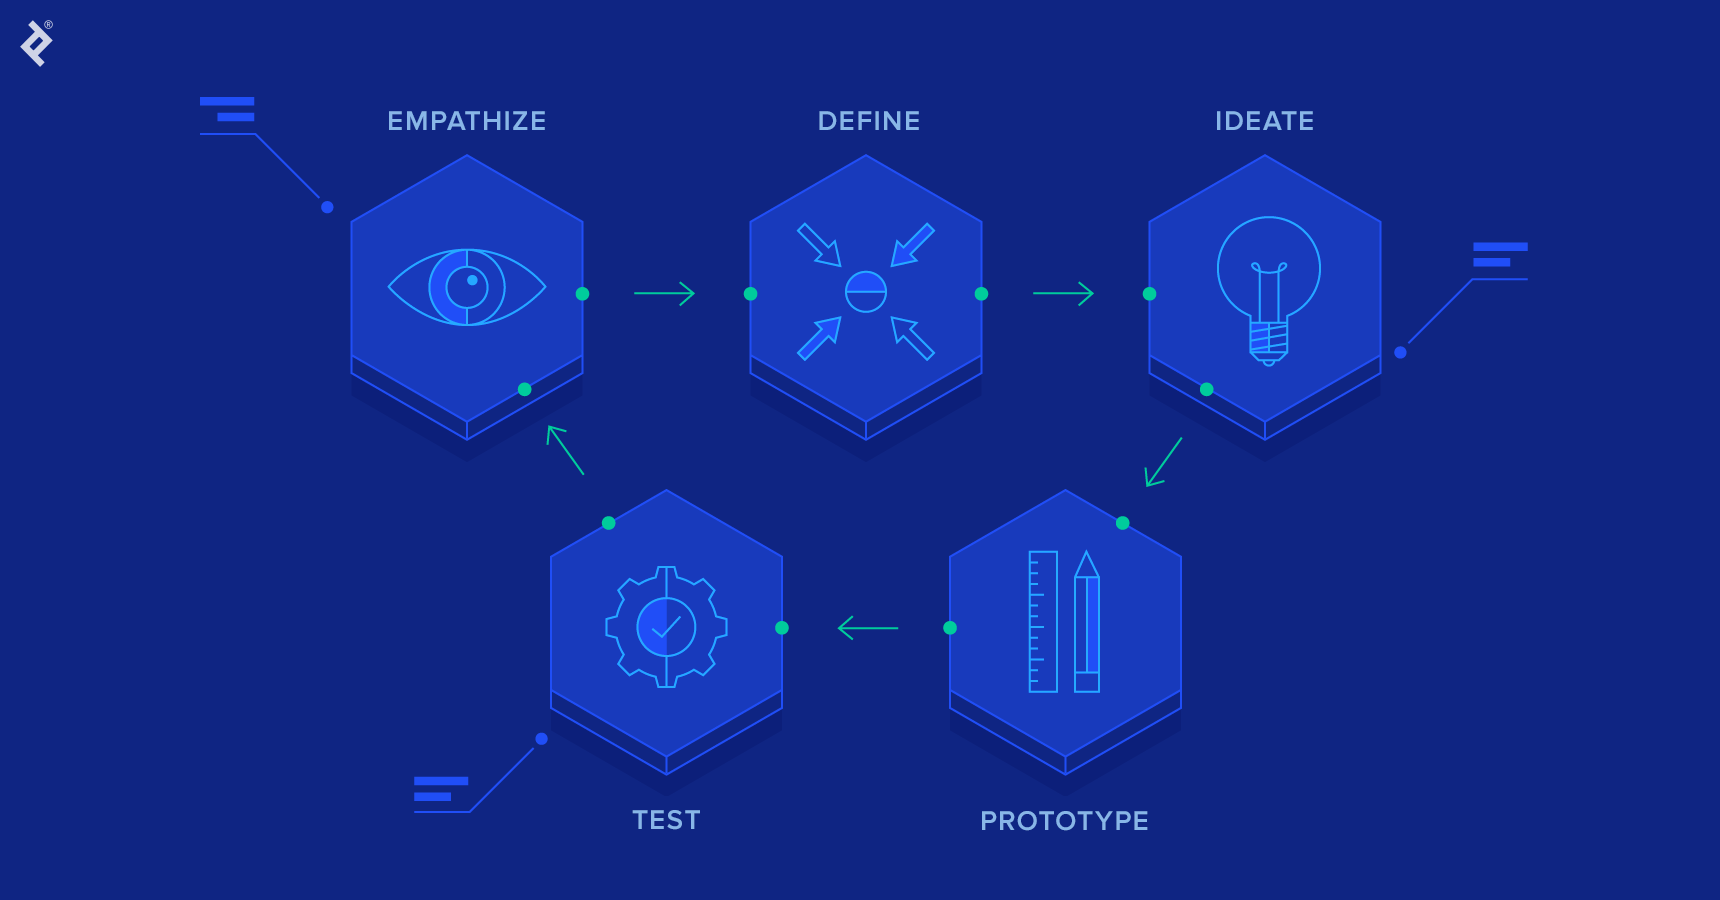 The six phases of the design thinking process